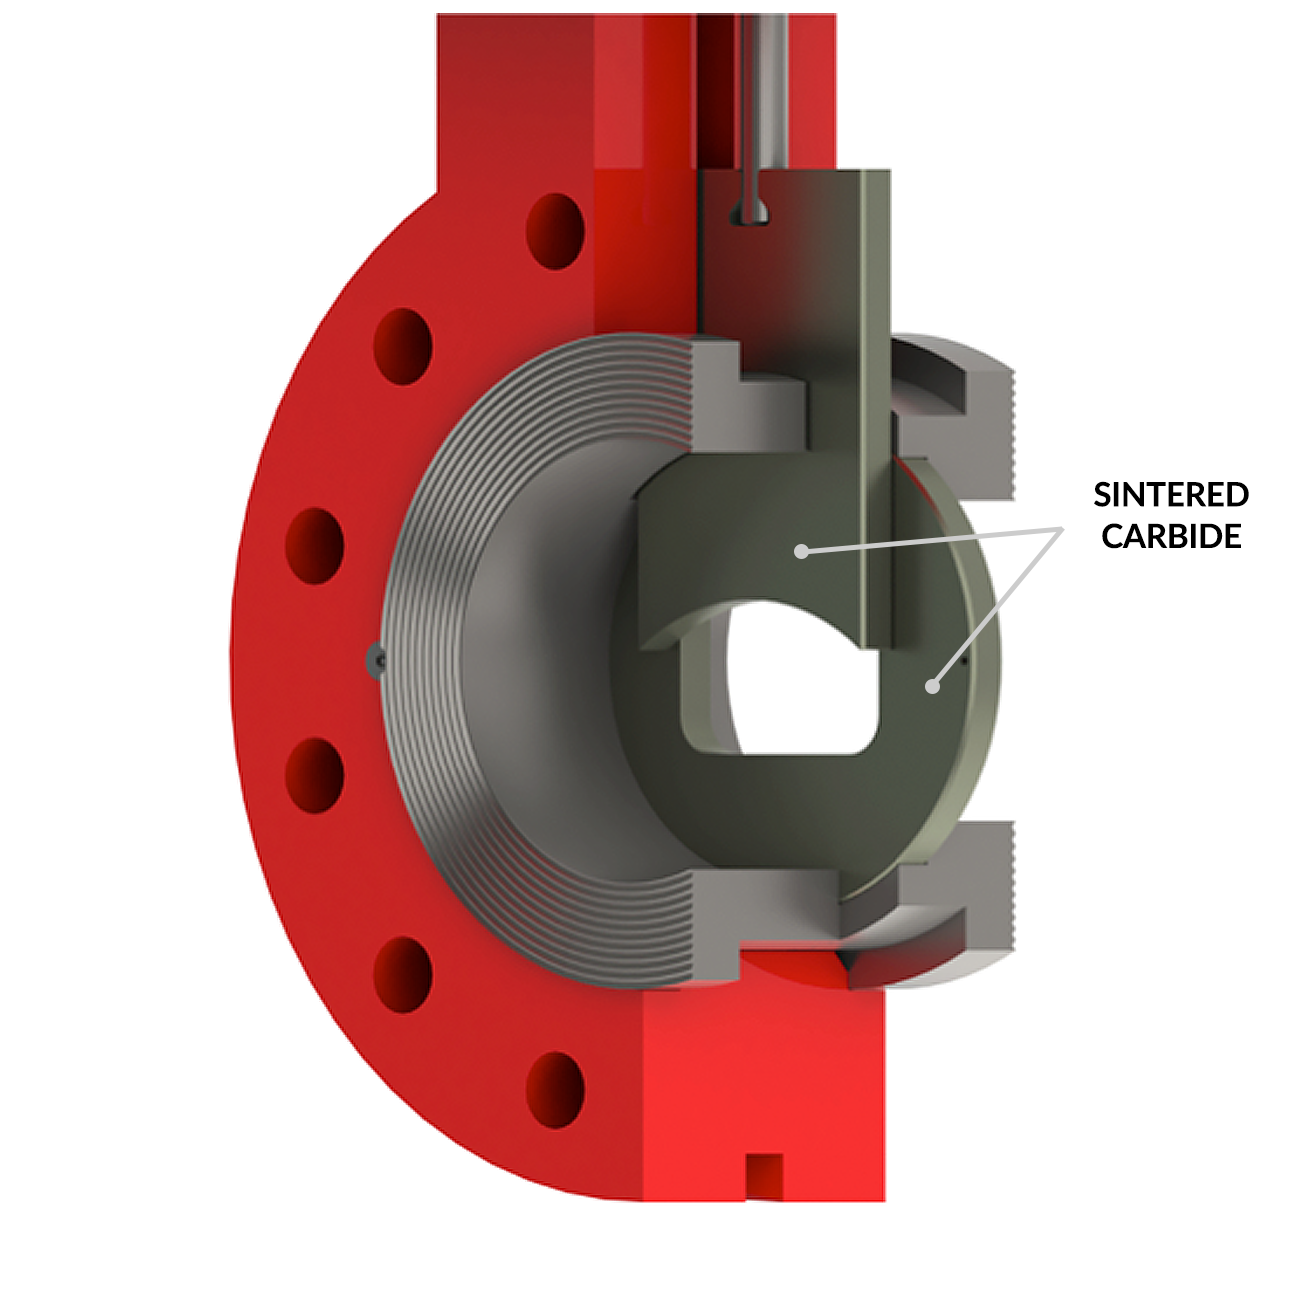 SlurryFlo control valves are made from extreme abrasion resistant materials such as tungsten carbide to increase valve service life.